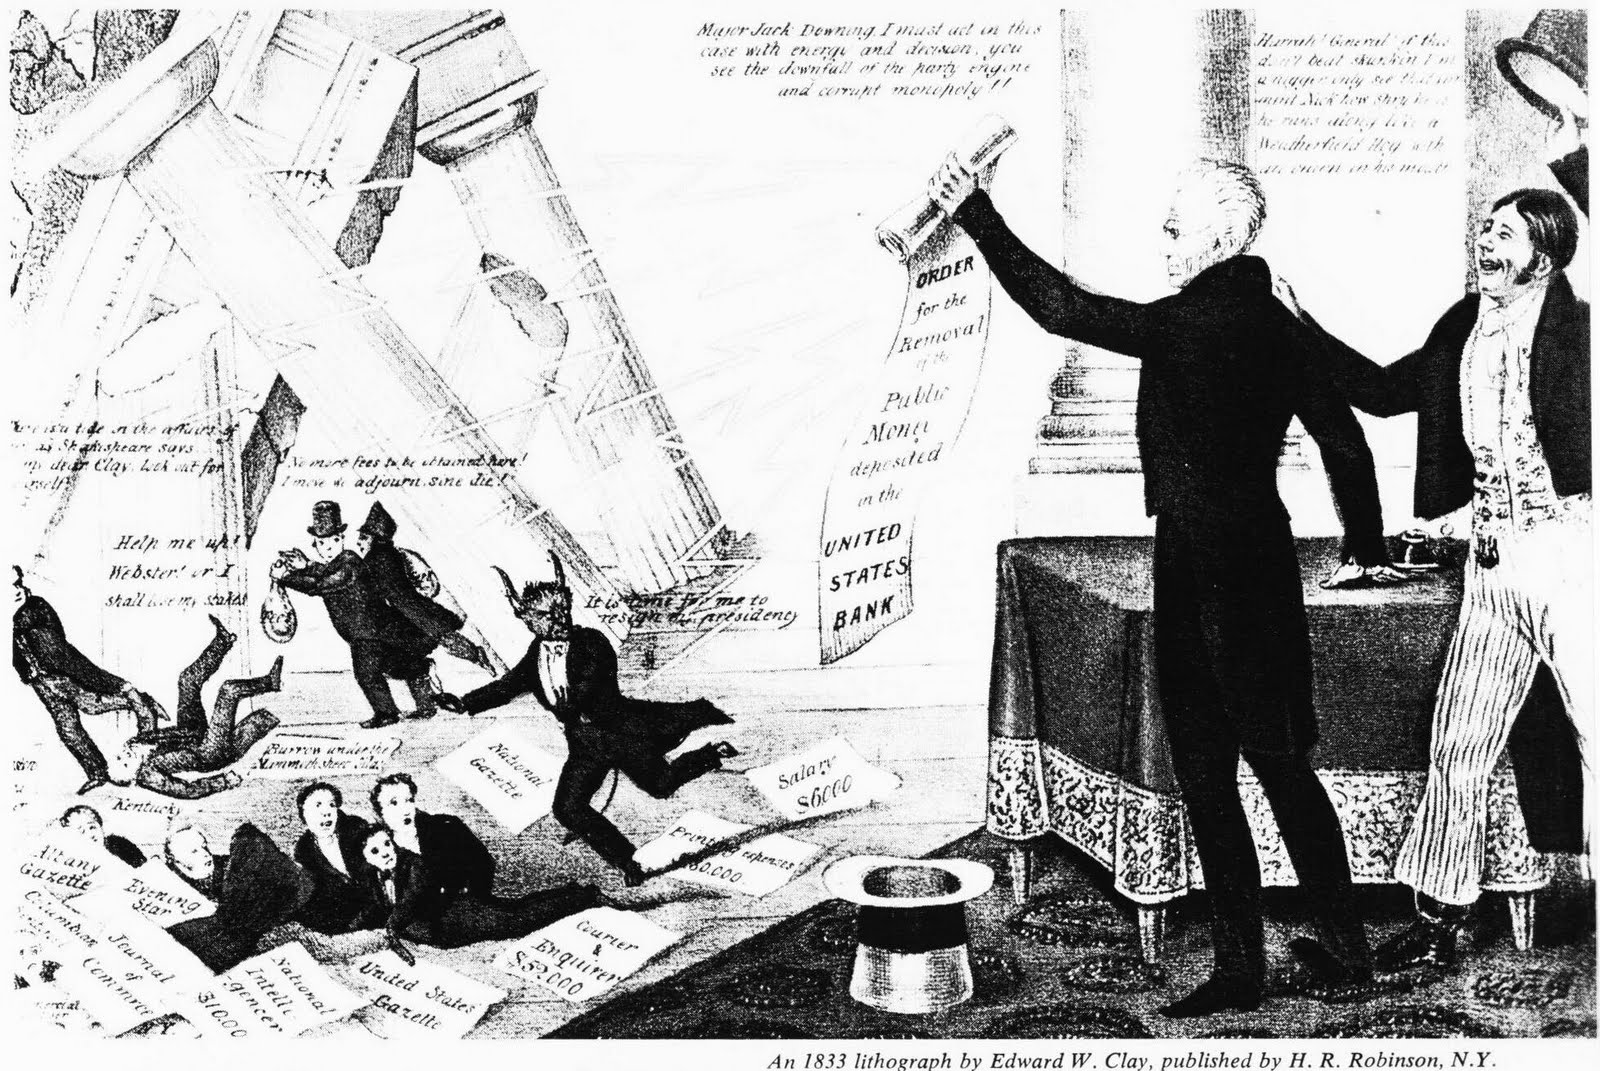 the tyranny of andrew jackson The expanding power of the presidency  blanched at the strong executive leadership of jackson — king andrew i,  when he conceived what a democratic tyranny.